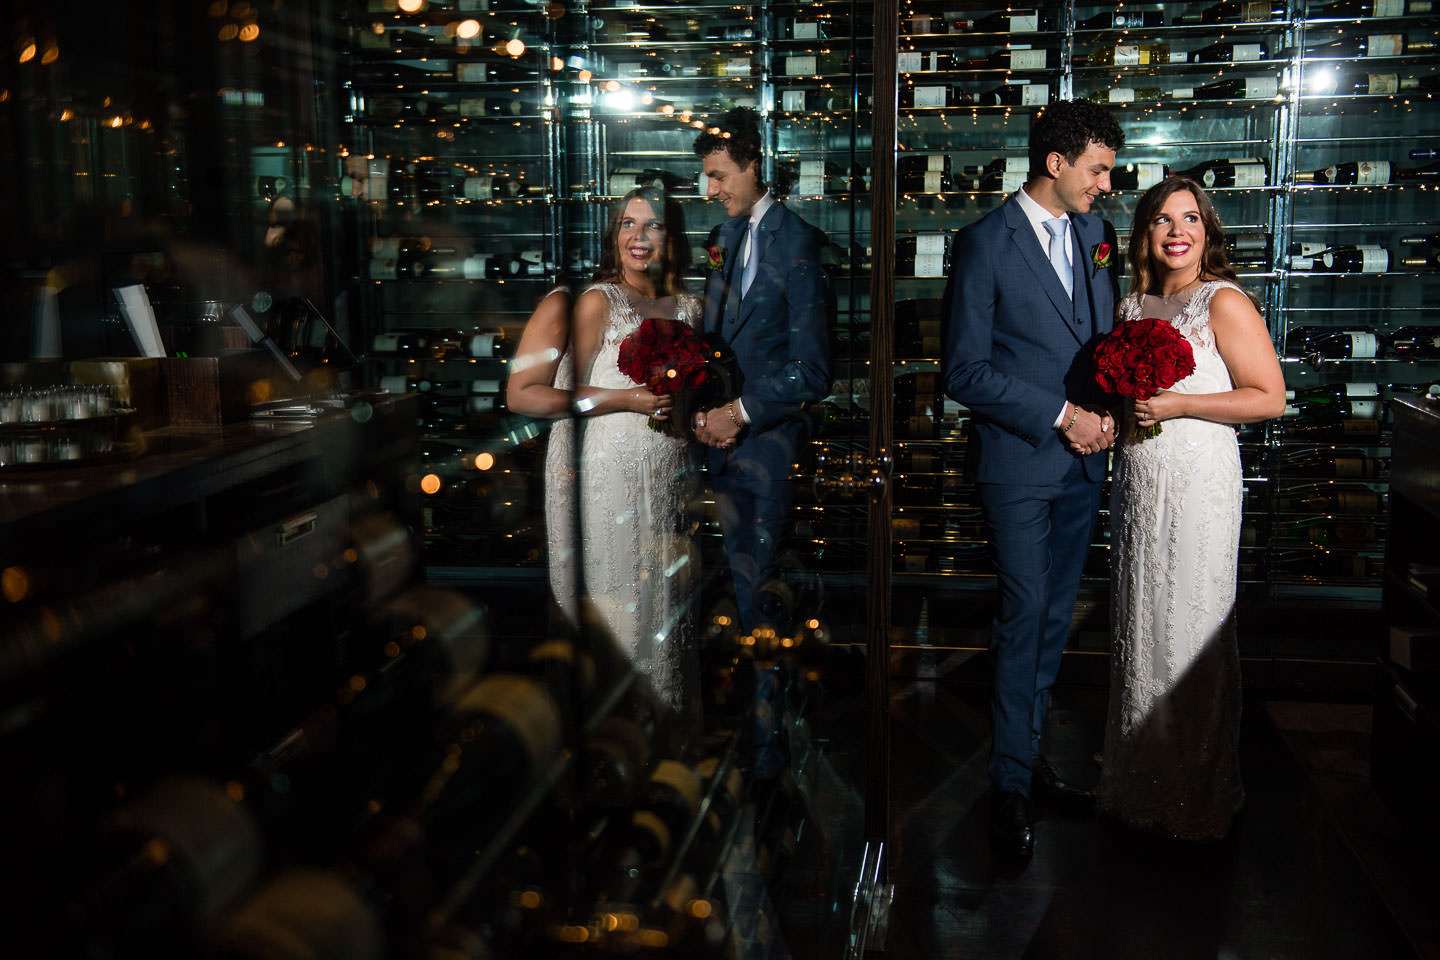 wine wall at mandarin oriental hotel in nyc with wedding couple